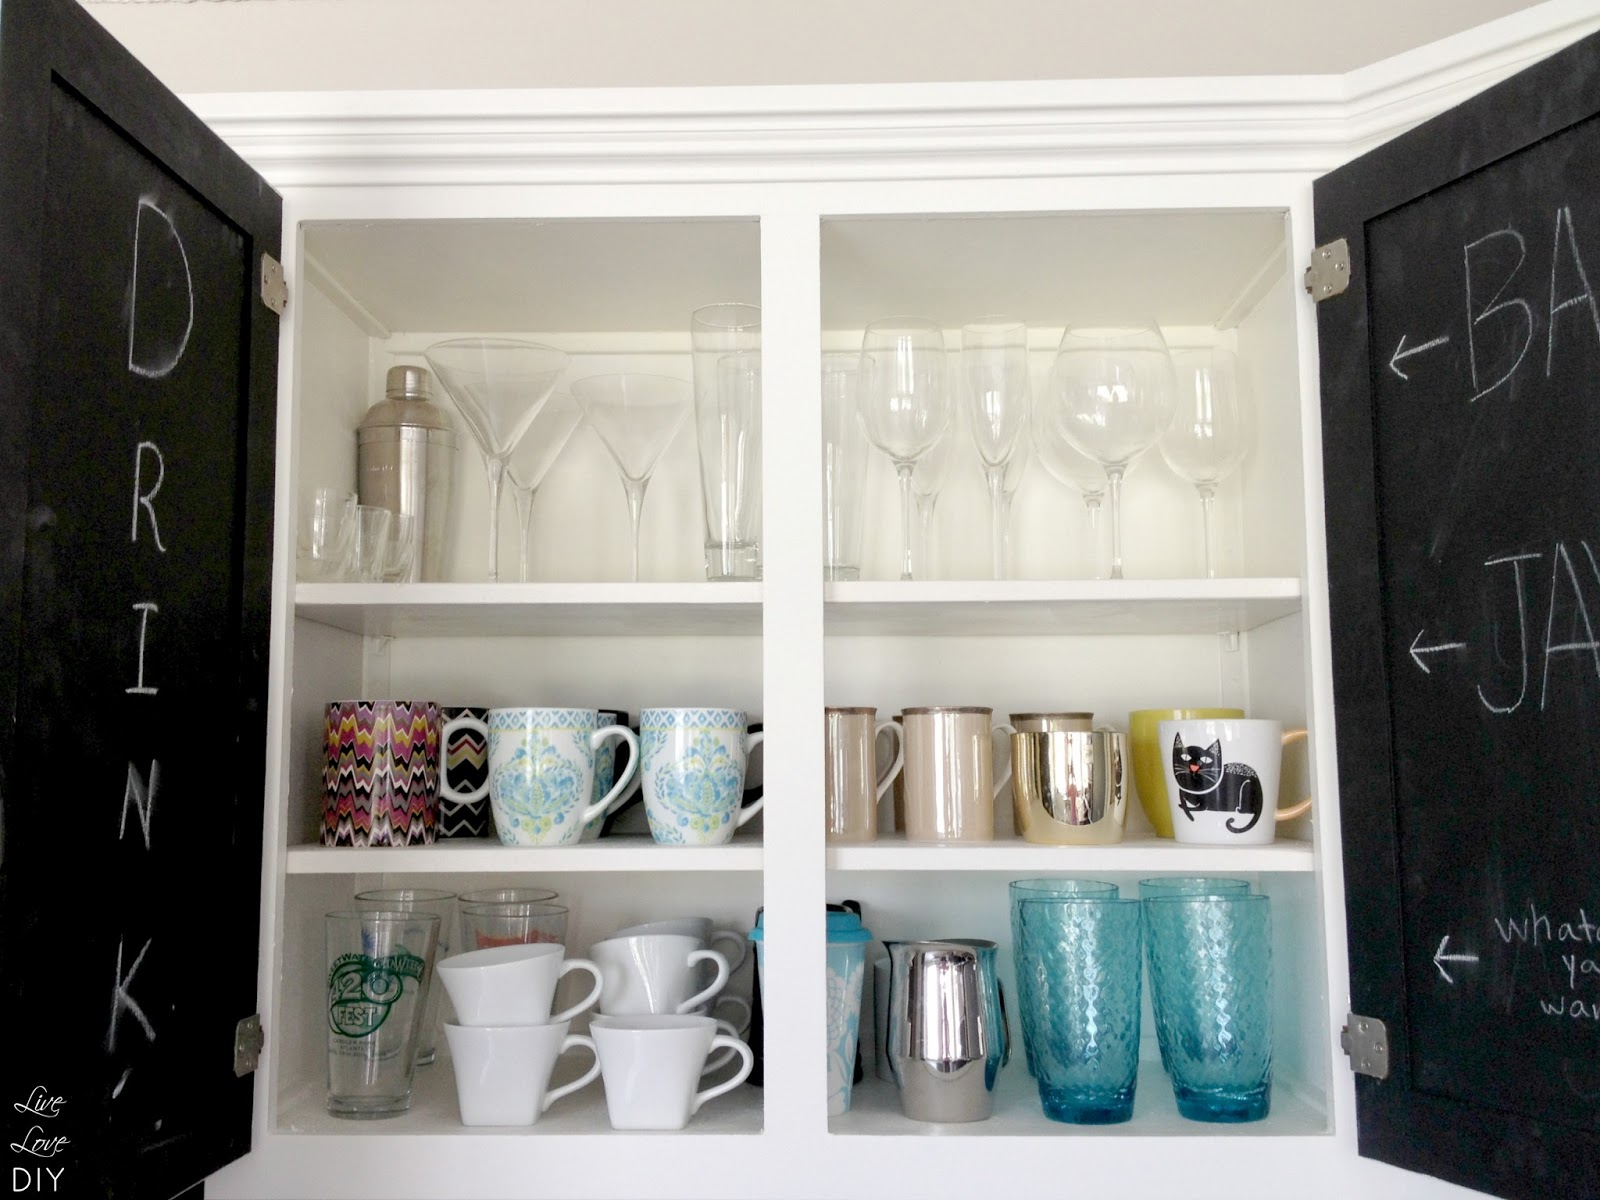 LiveLoveDIY: 10 Ways To Organize Your Life